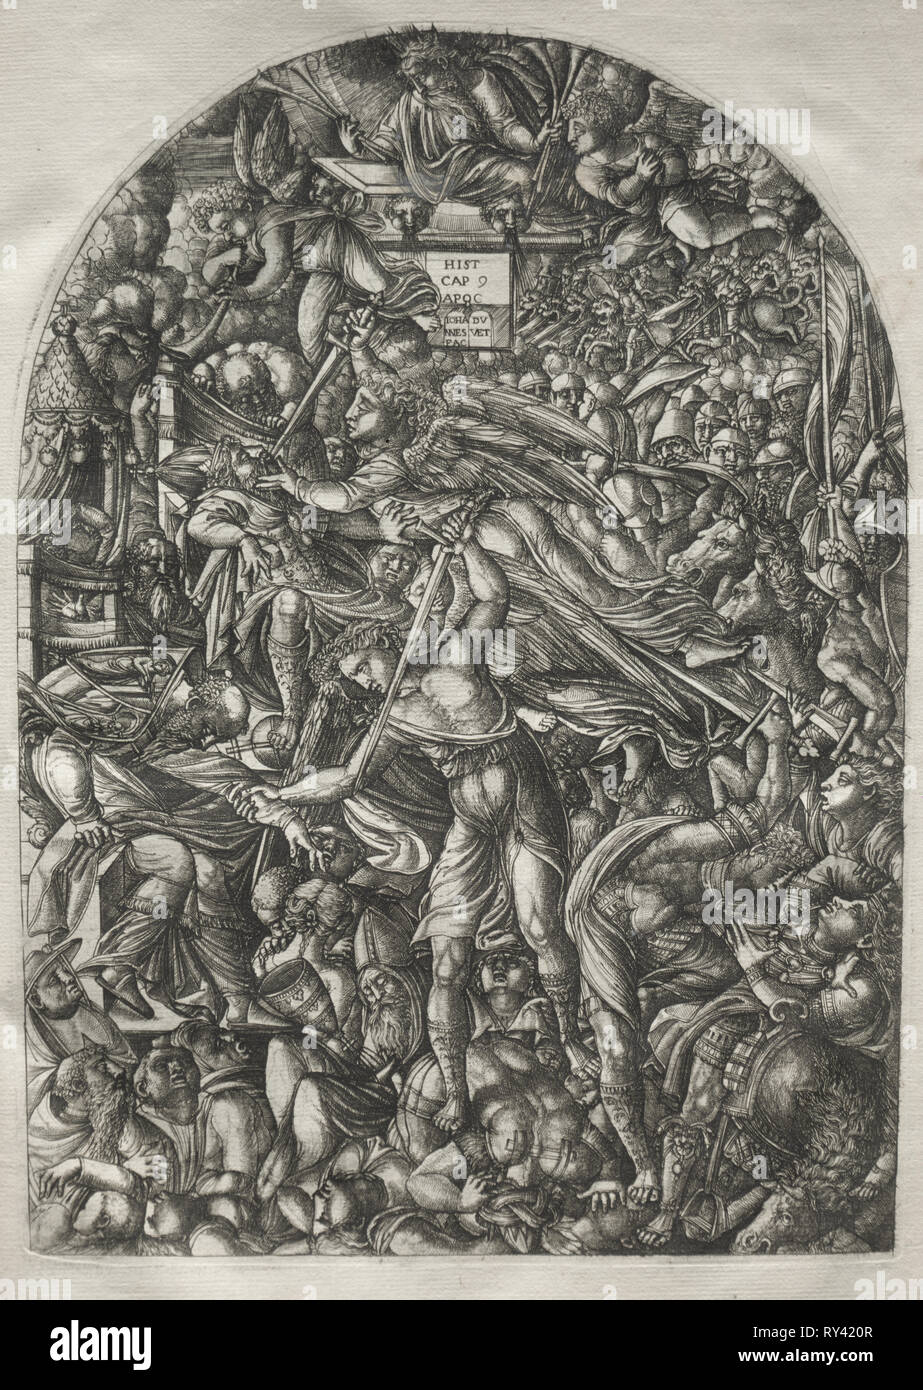 The Apocalypse:  The Angel Sounding the Sixth Trumpet, 1546-1556. Jean Duvet (French, 1485-1561). Engraving - Stock Image